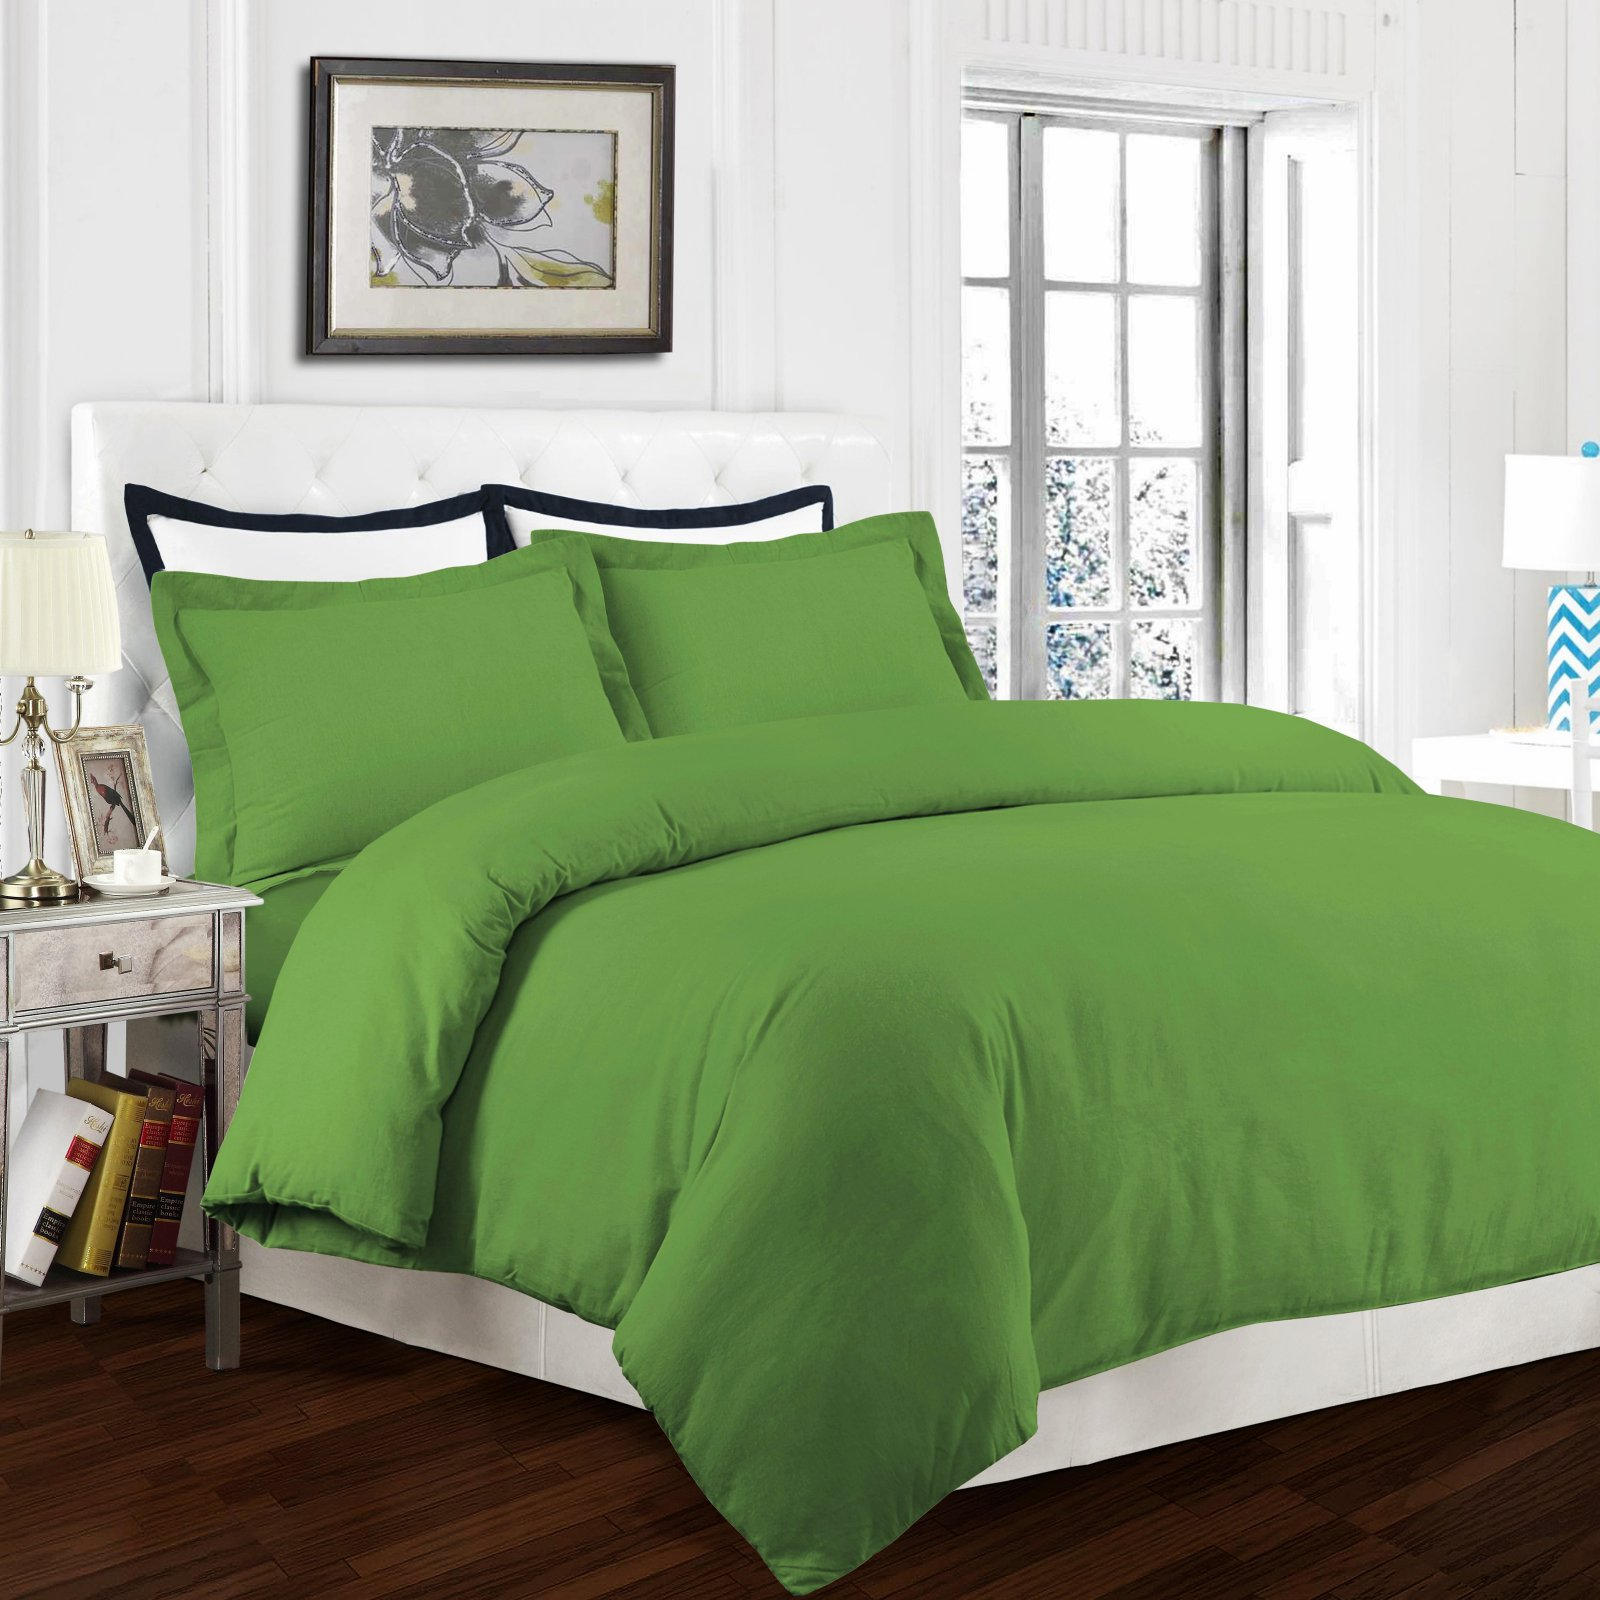 170-GSM Solid Flannel 3 Piece Duvet Cover Set by Tribeca Living